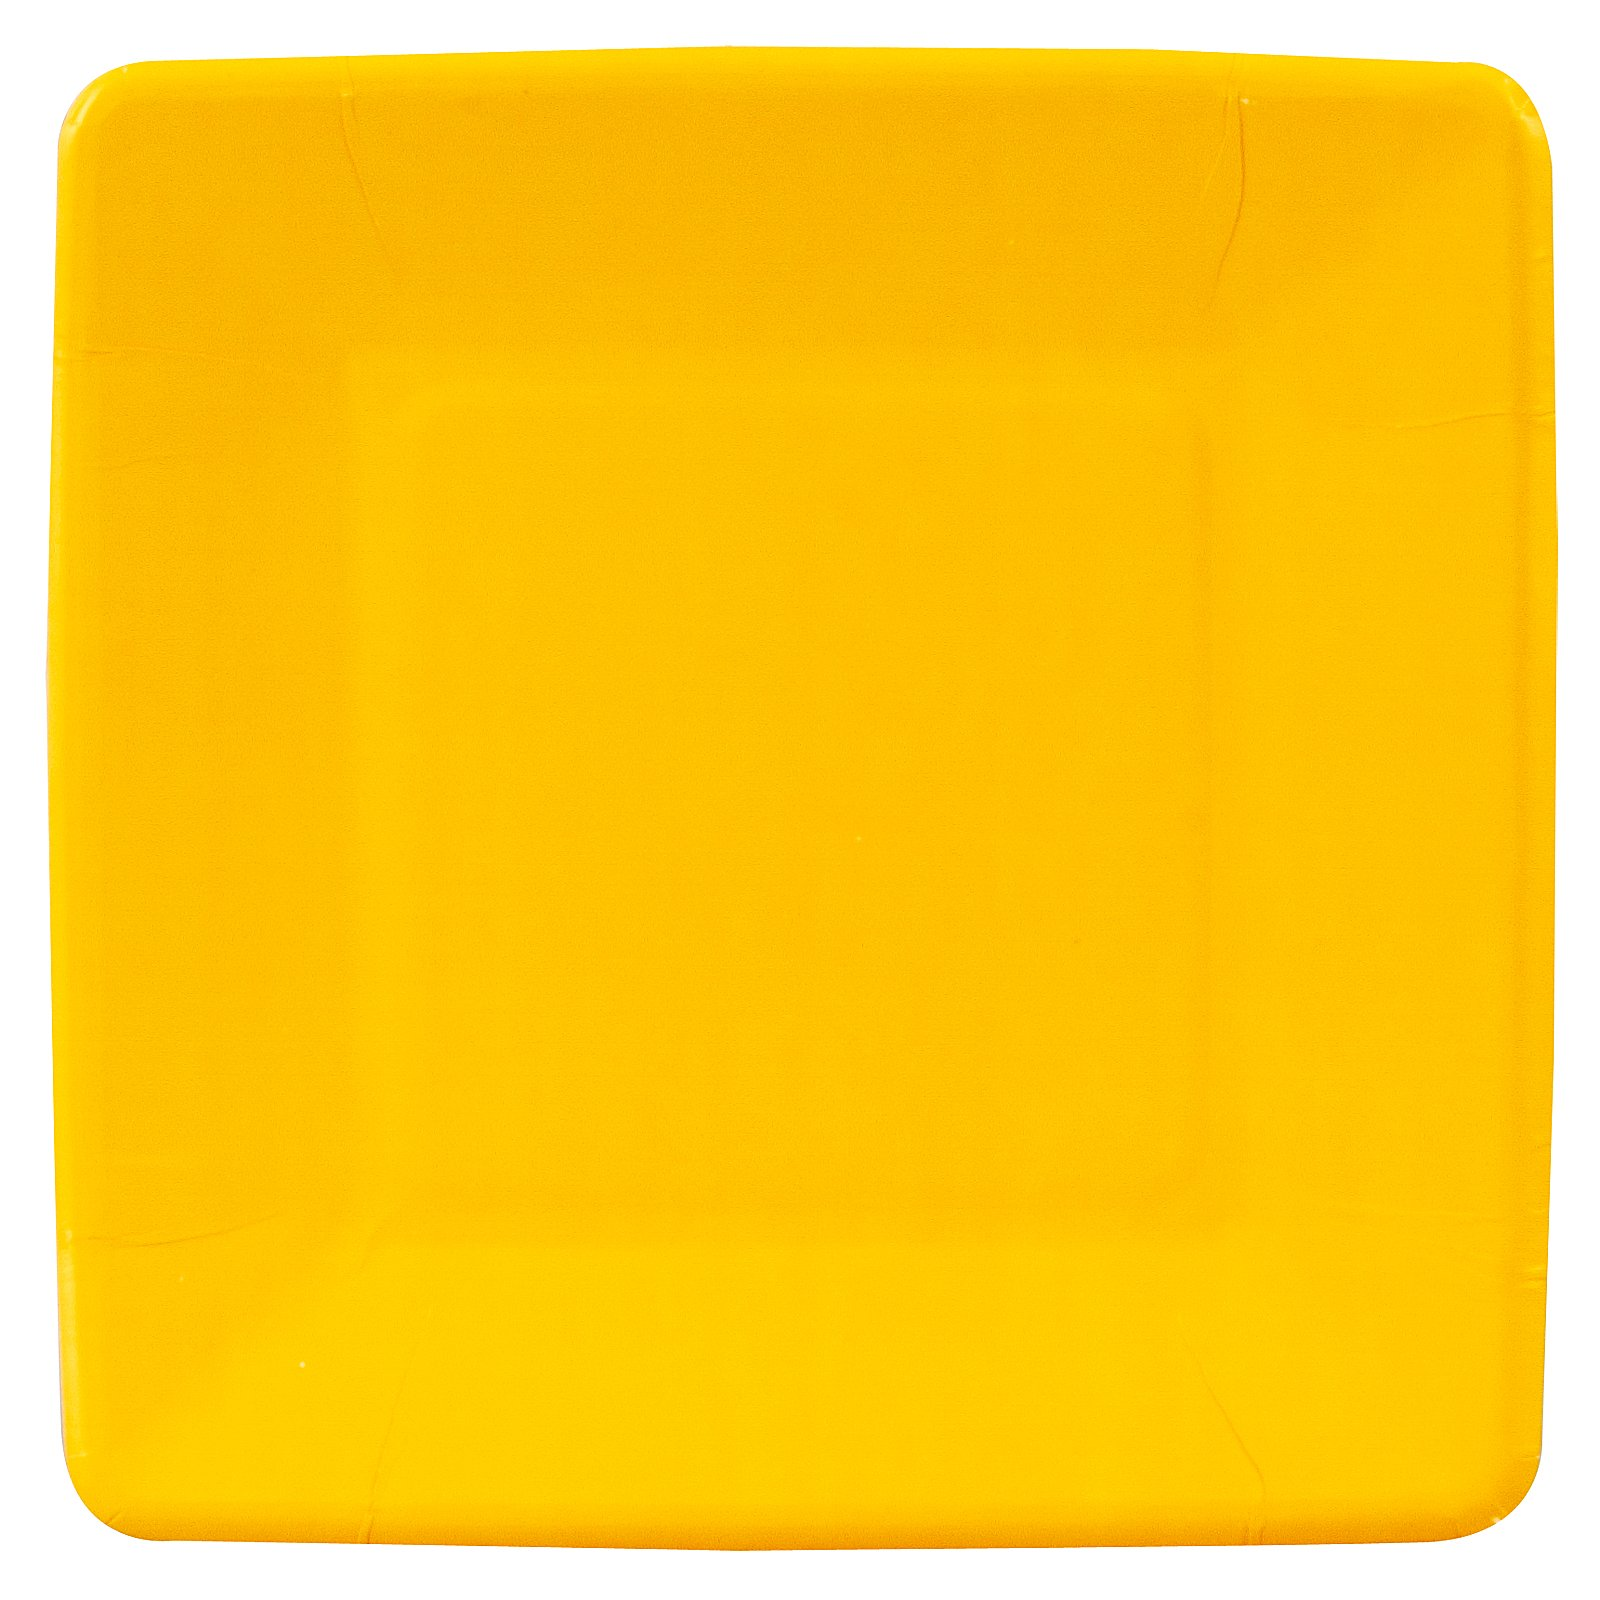 School Bus Yellow (Yellow) Square Dessert Plates (18 count)